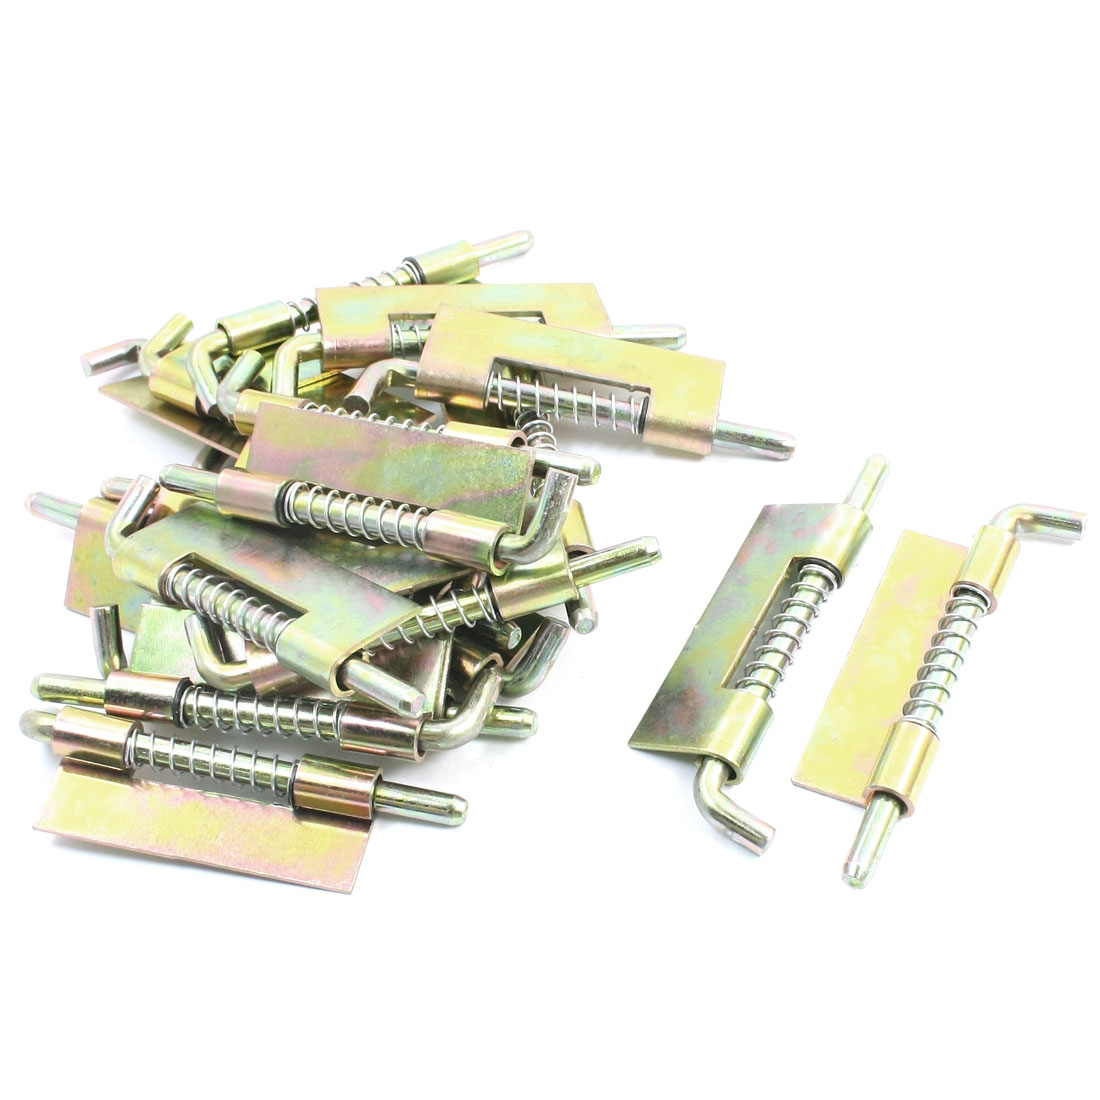 "Home Door Window Safety Part Bronze Tone Metal Right-handed Spring Loaded Barrel Bolt Latch 3.5"" 20Pcs"